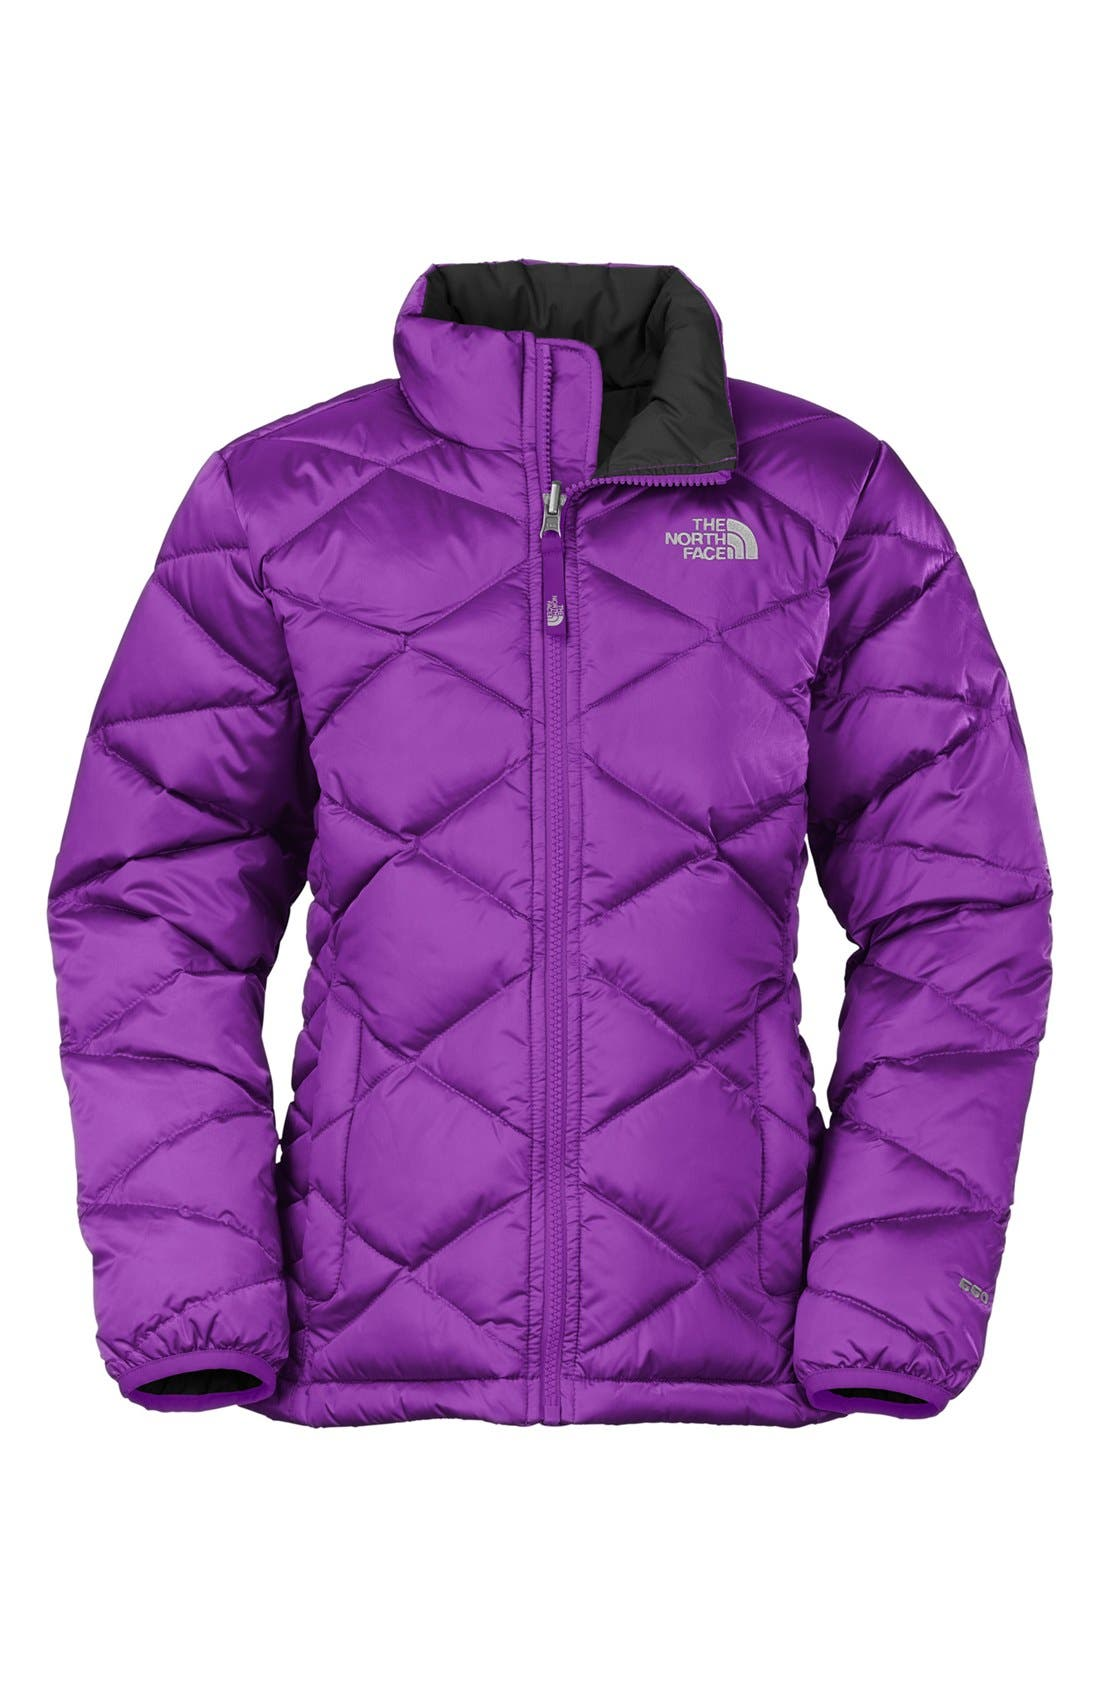 Alternate Image 1 Selected - The North Face 'Aconcagua' Jacket (Little Girls & Big Girls)